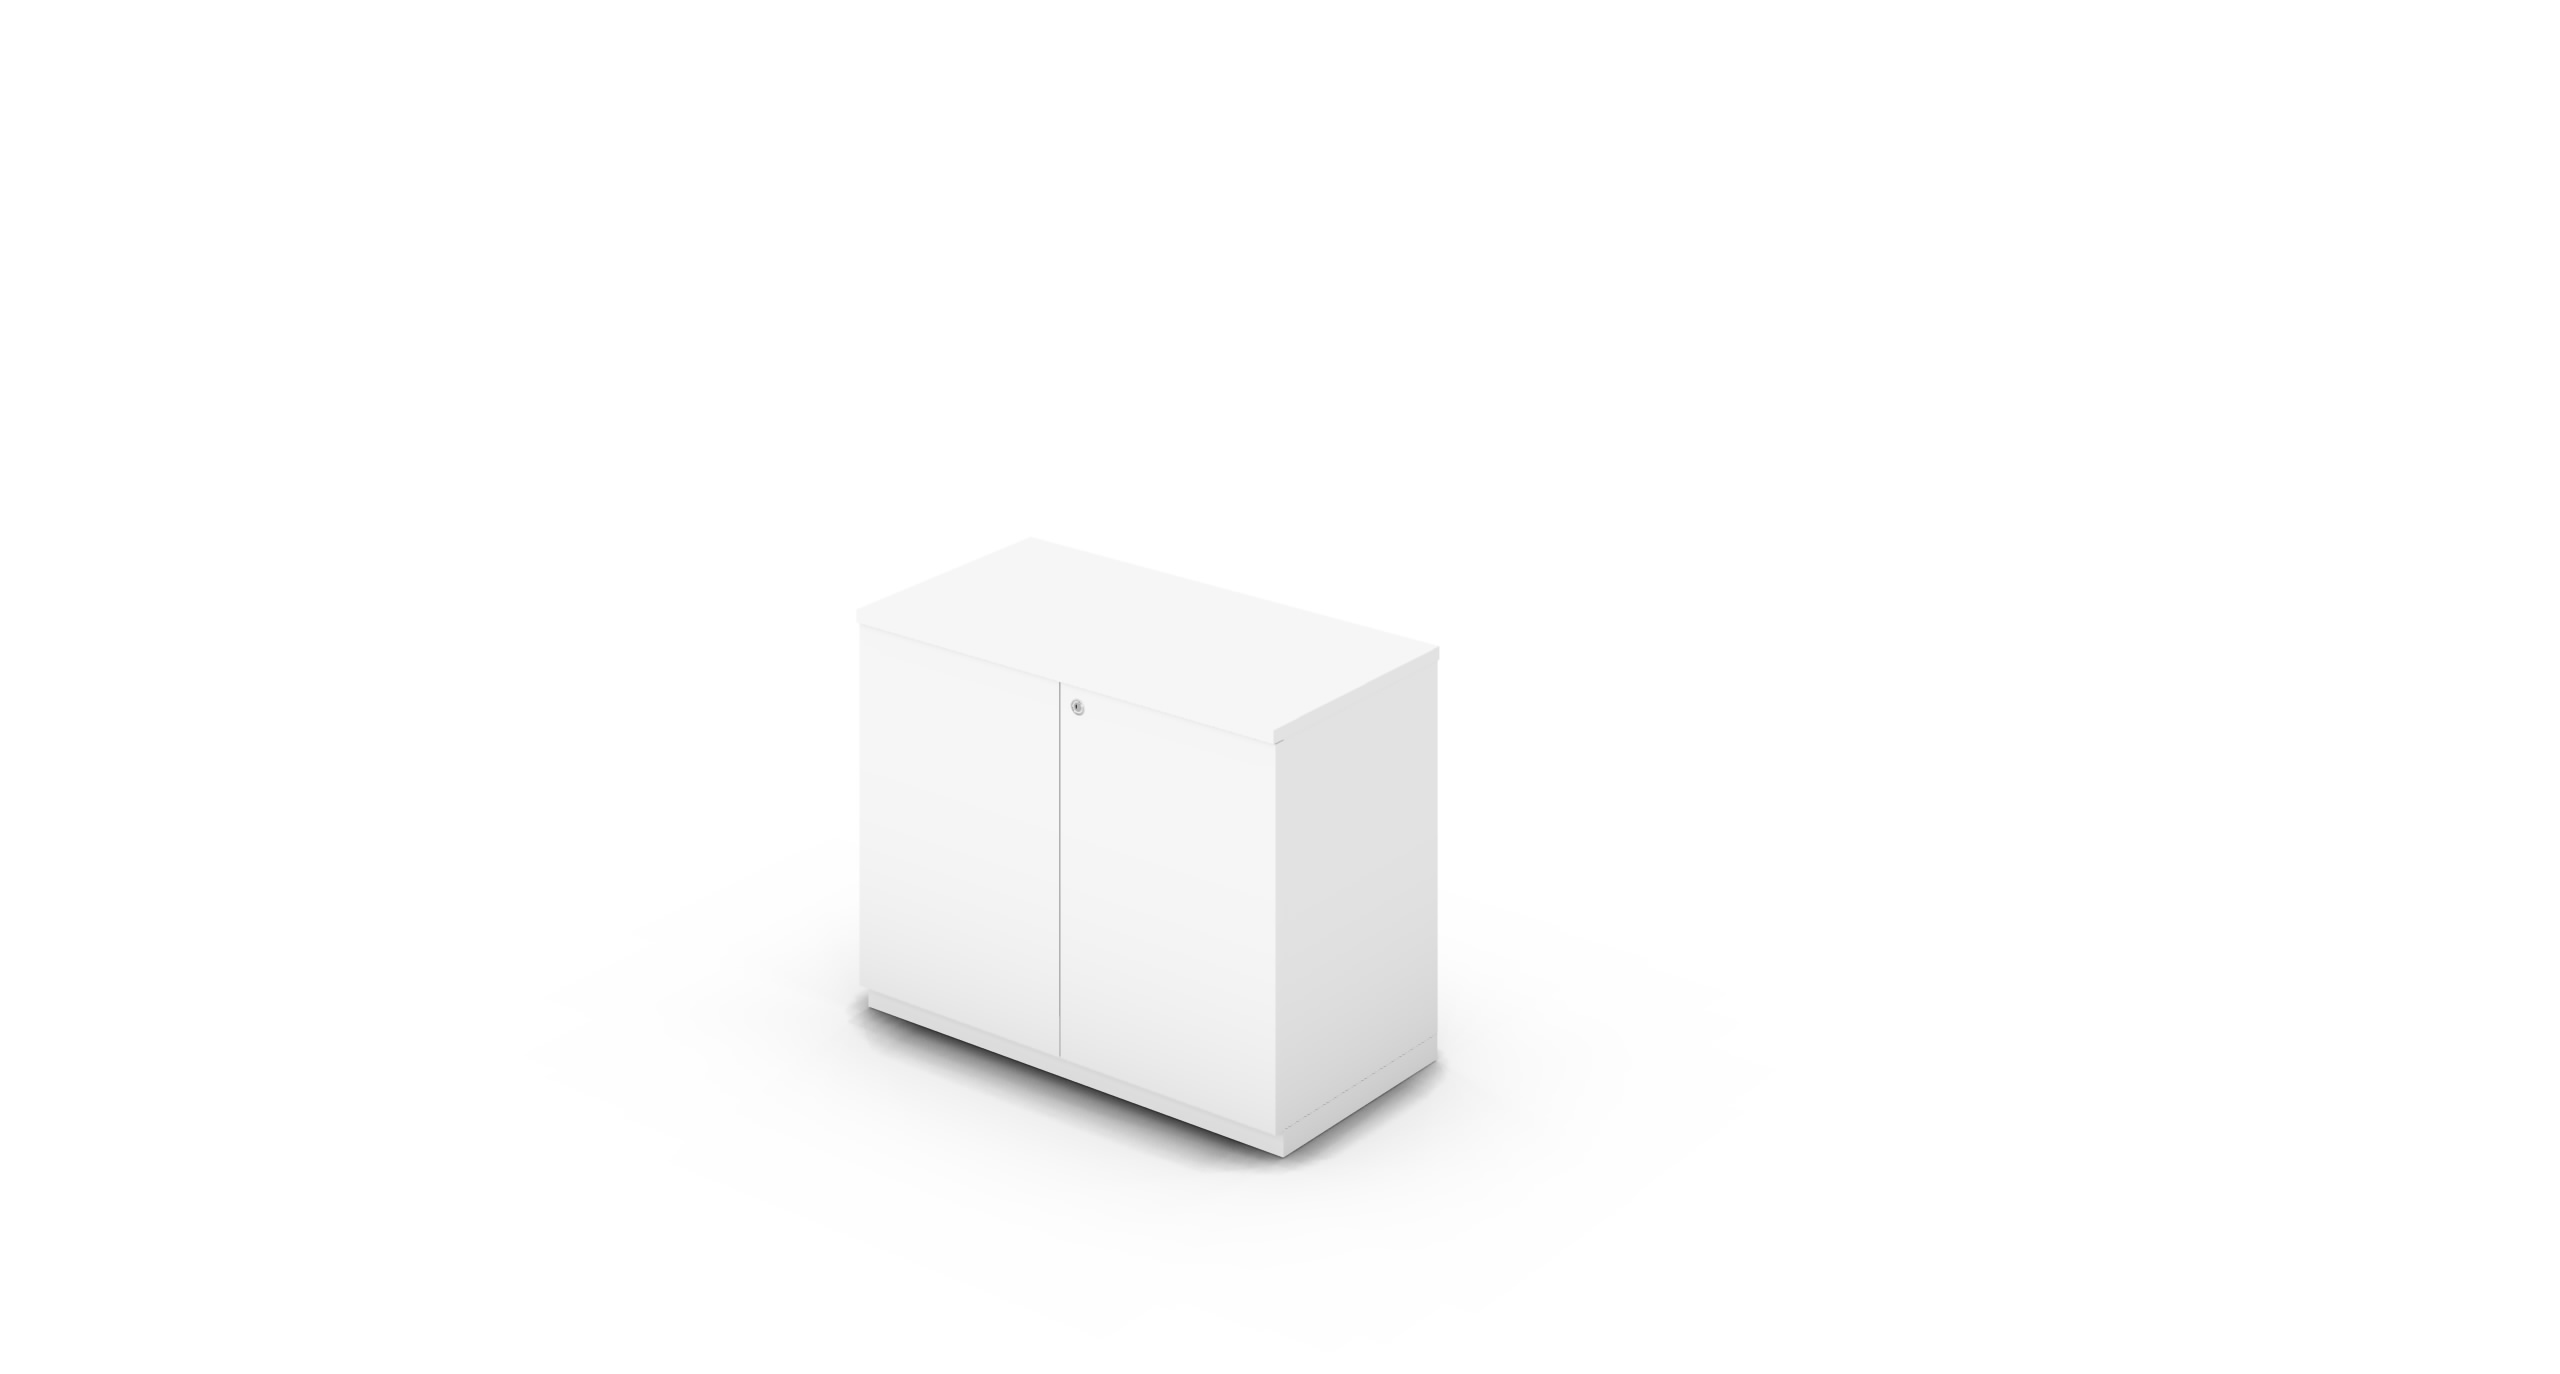 Cabinet_900x450x775_HD_White_Push_WithCylinder